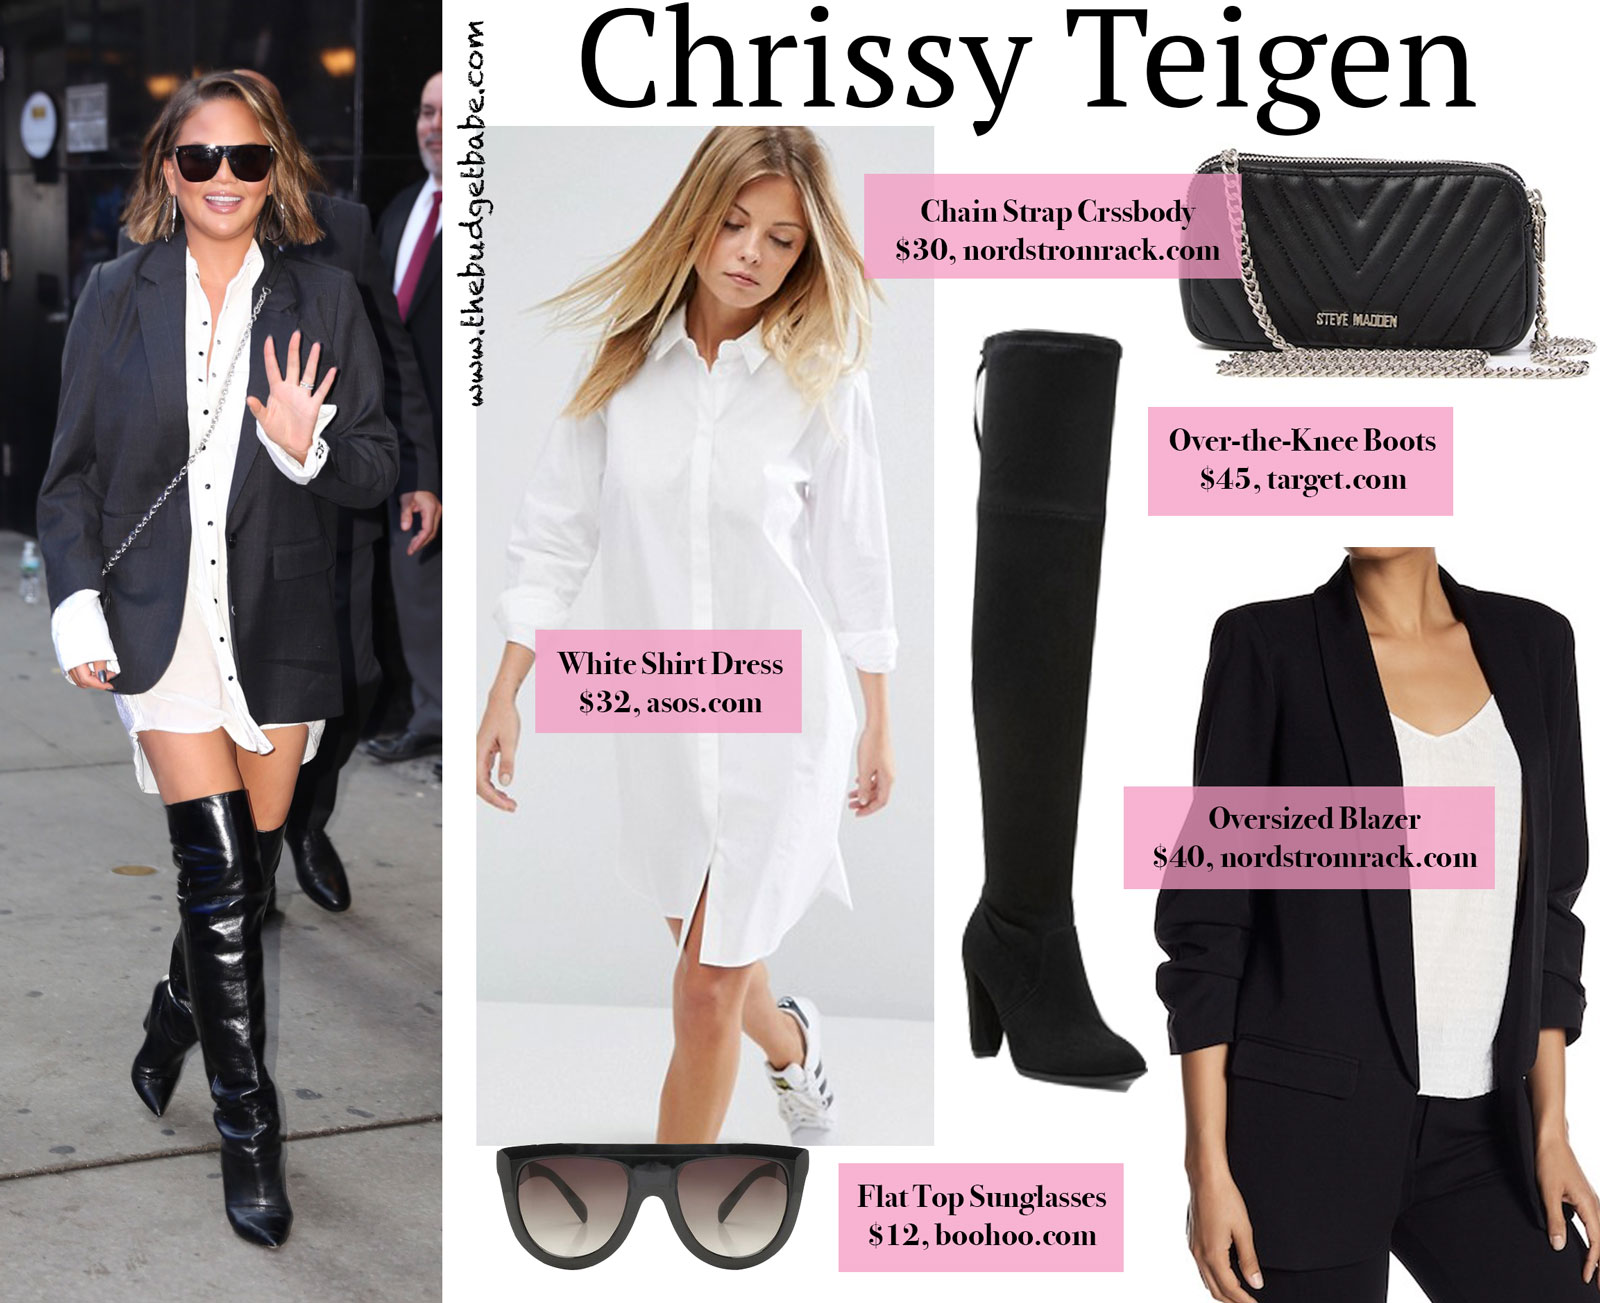 Chrissy Teigen White Shirt Dress Look for Less